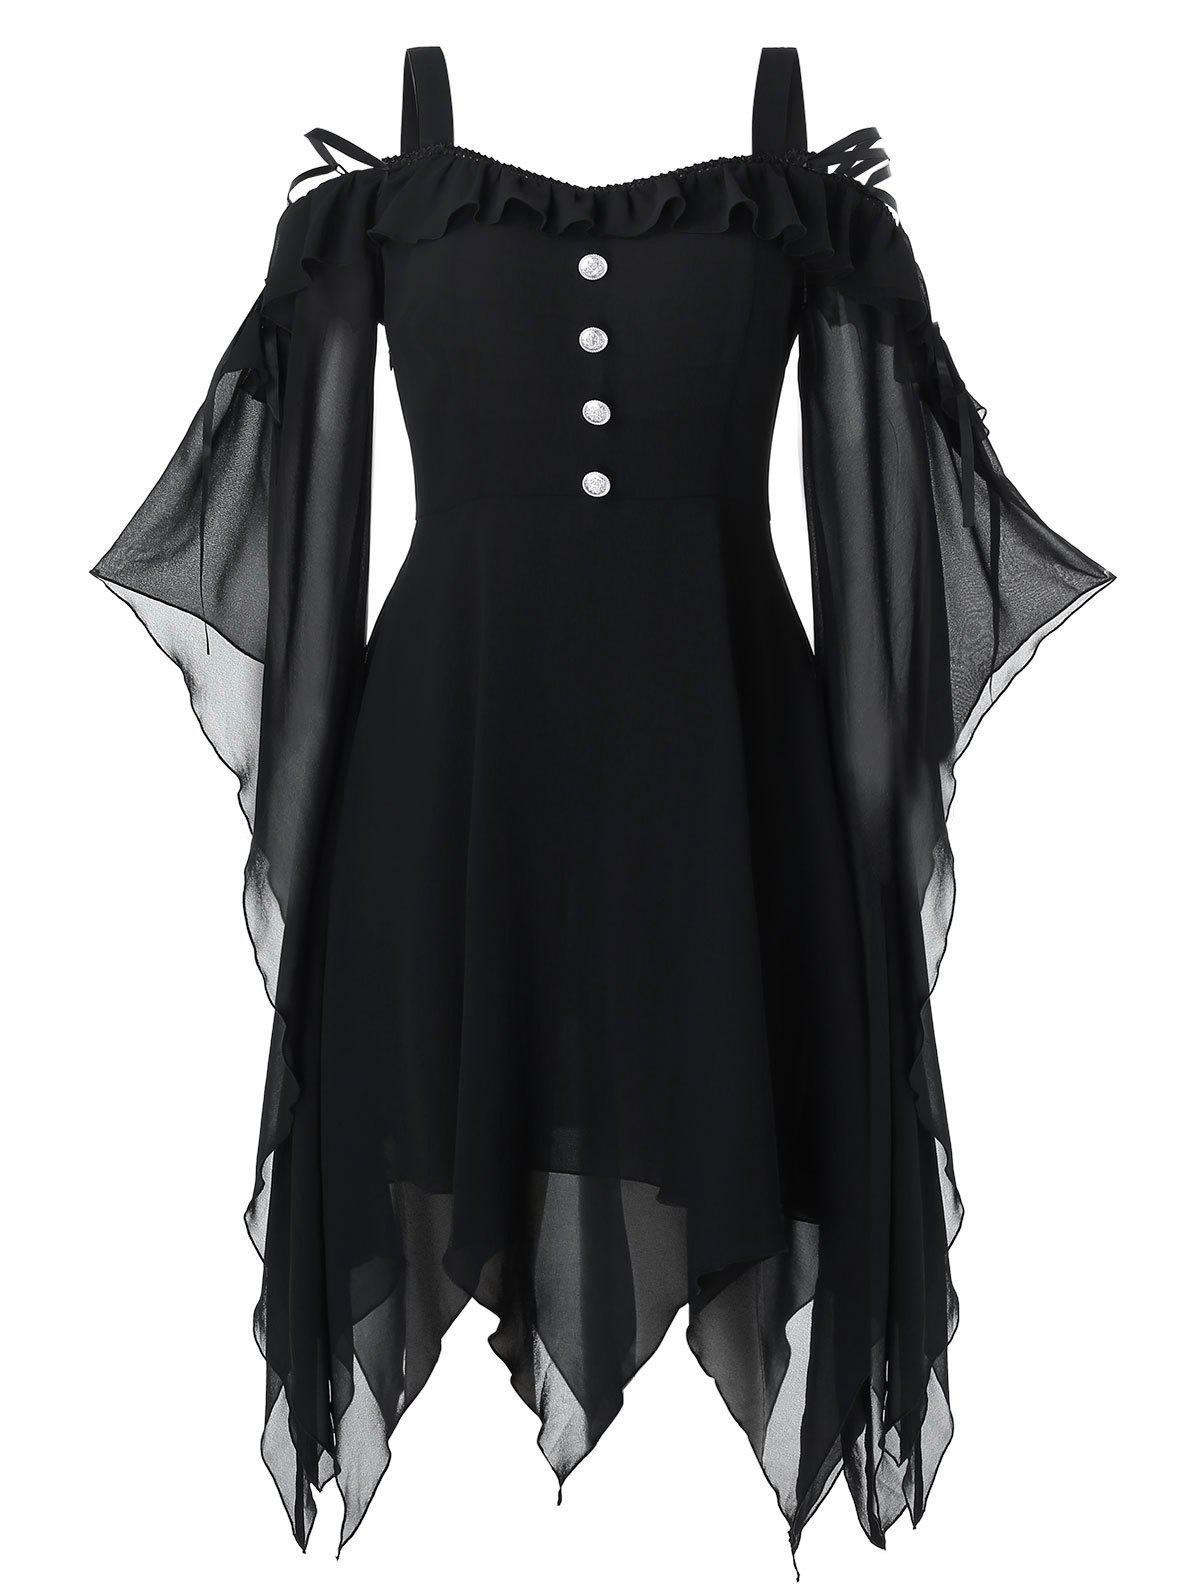 Chic Plus Size Halloween Butterfly Sleeve Lace Up Handkerchief Gothic Dress